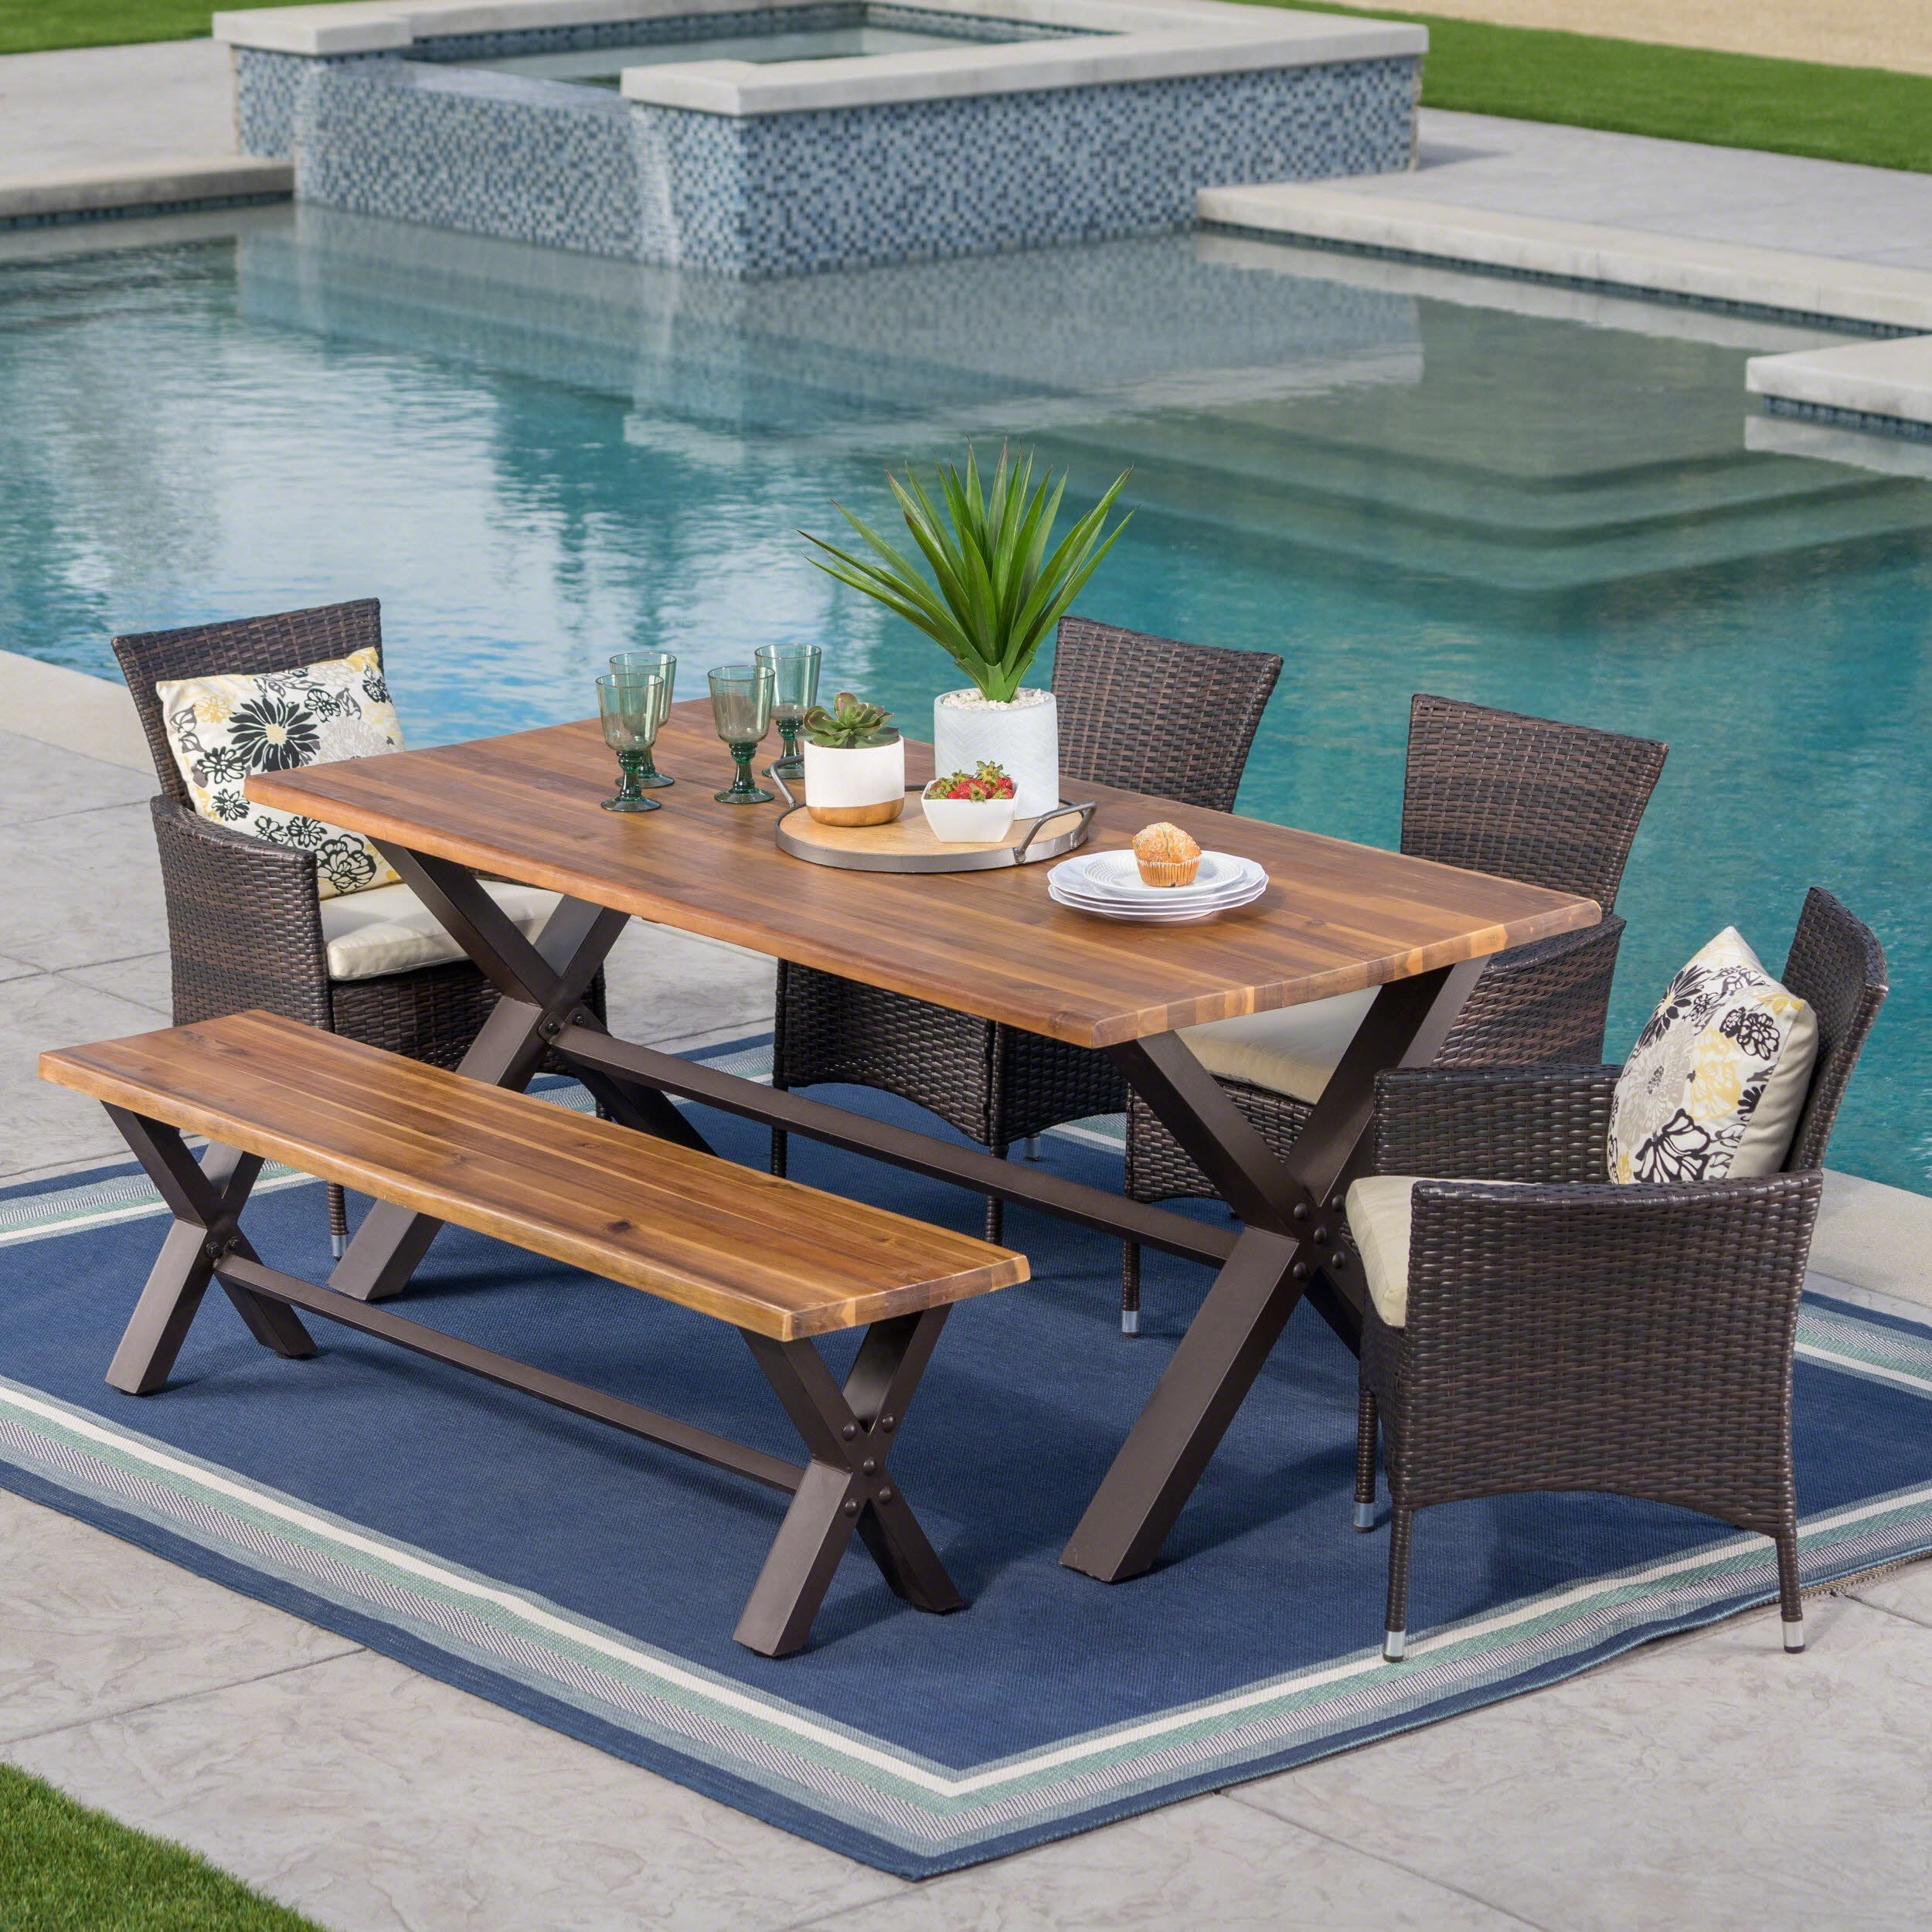 Ozark Outdoor 6-Piece Rectangle Wicker Wood Dining Set with Cushions by  Christopher Knight Home